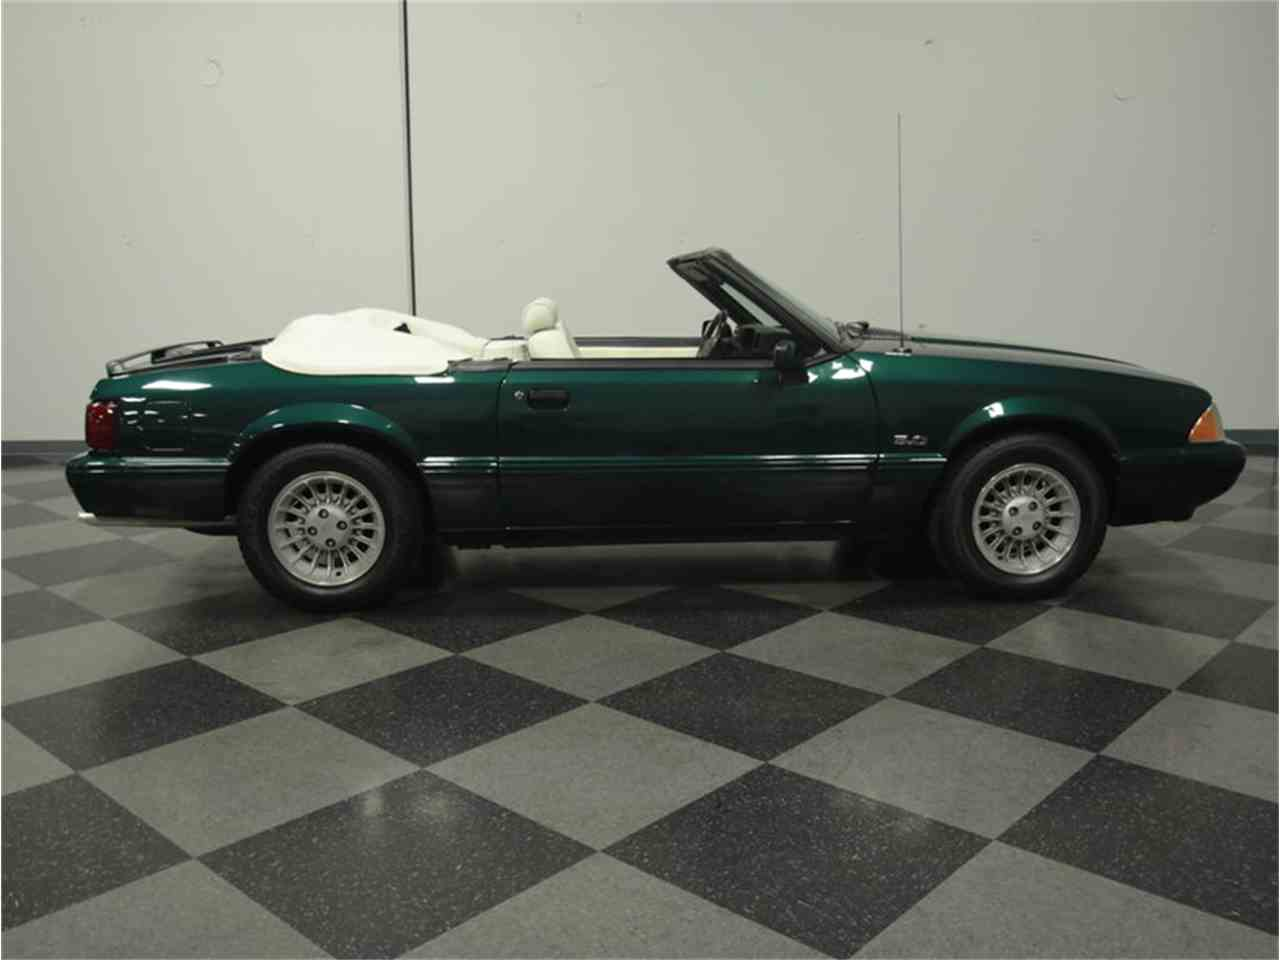 Large Picture of '90 Mustang LX 7-UP Edition located in Lithia Springs Georgia - $12,995.00 Offered by Streetside Classics - Atlanta - IRSA